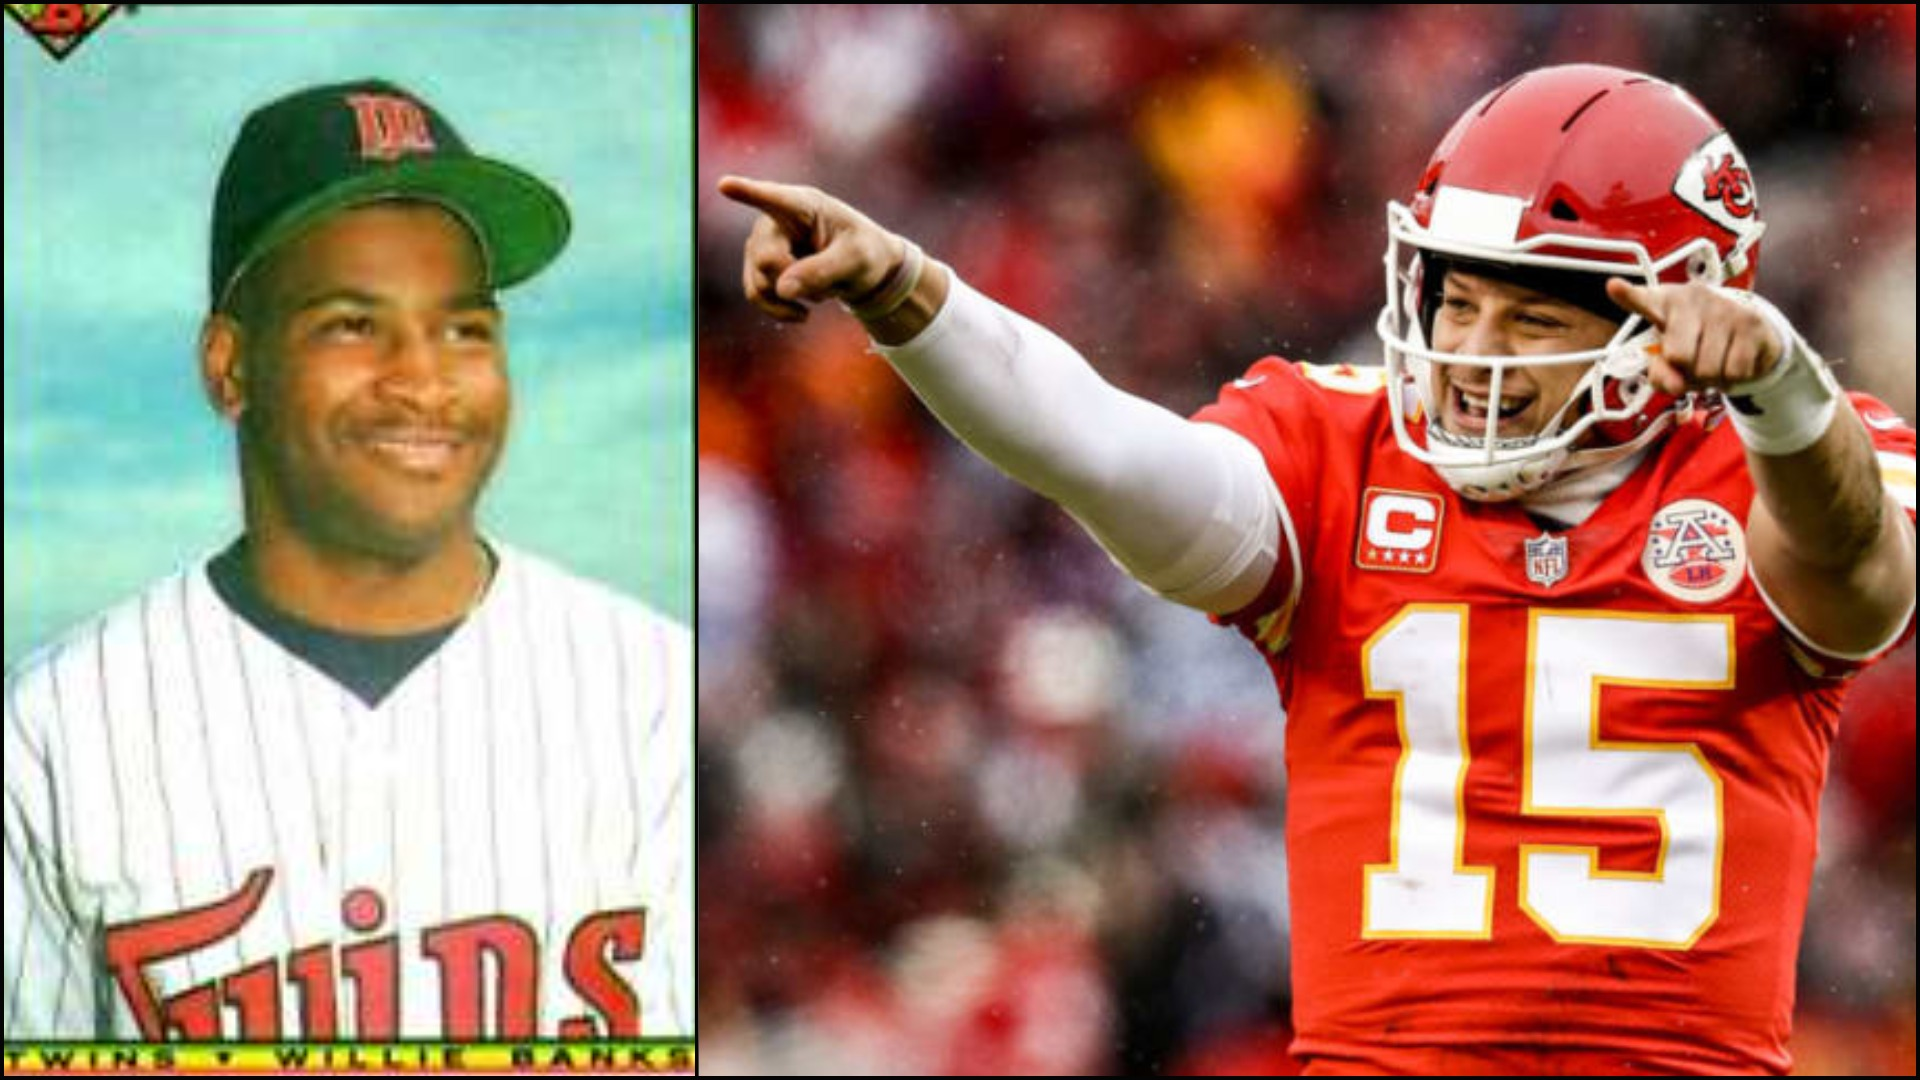 Willie Banks - Patrick Mahomes II